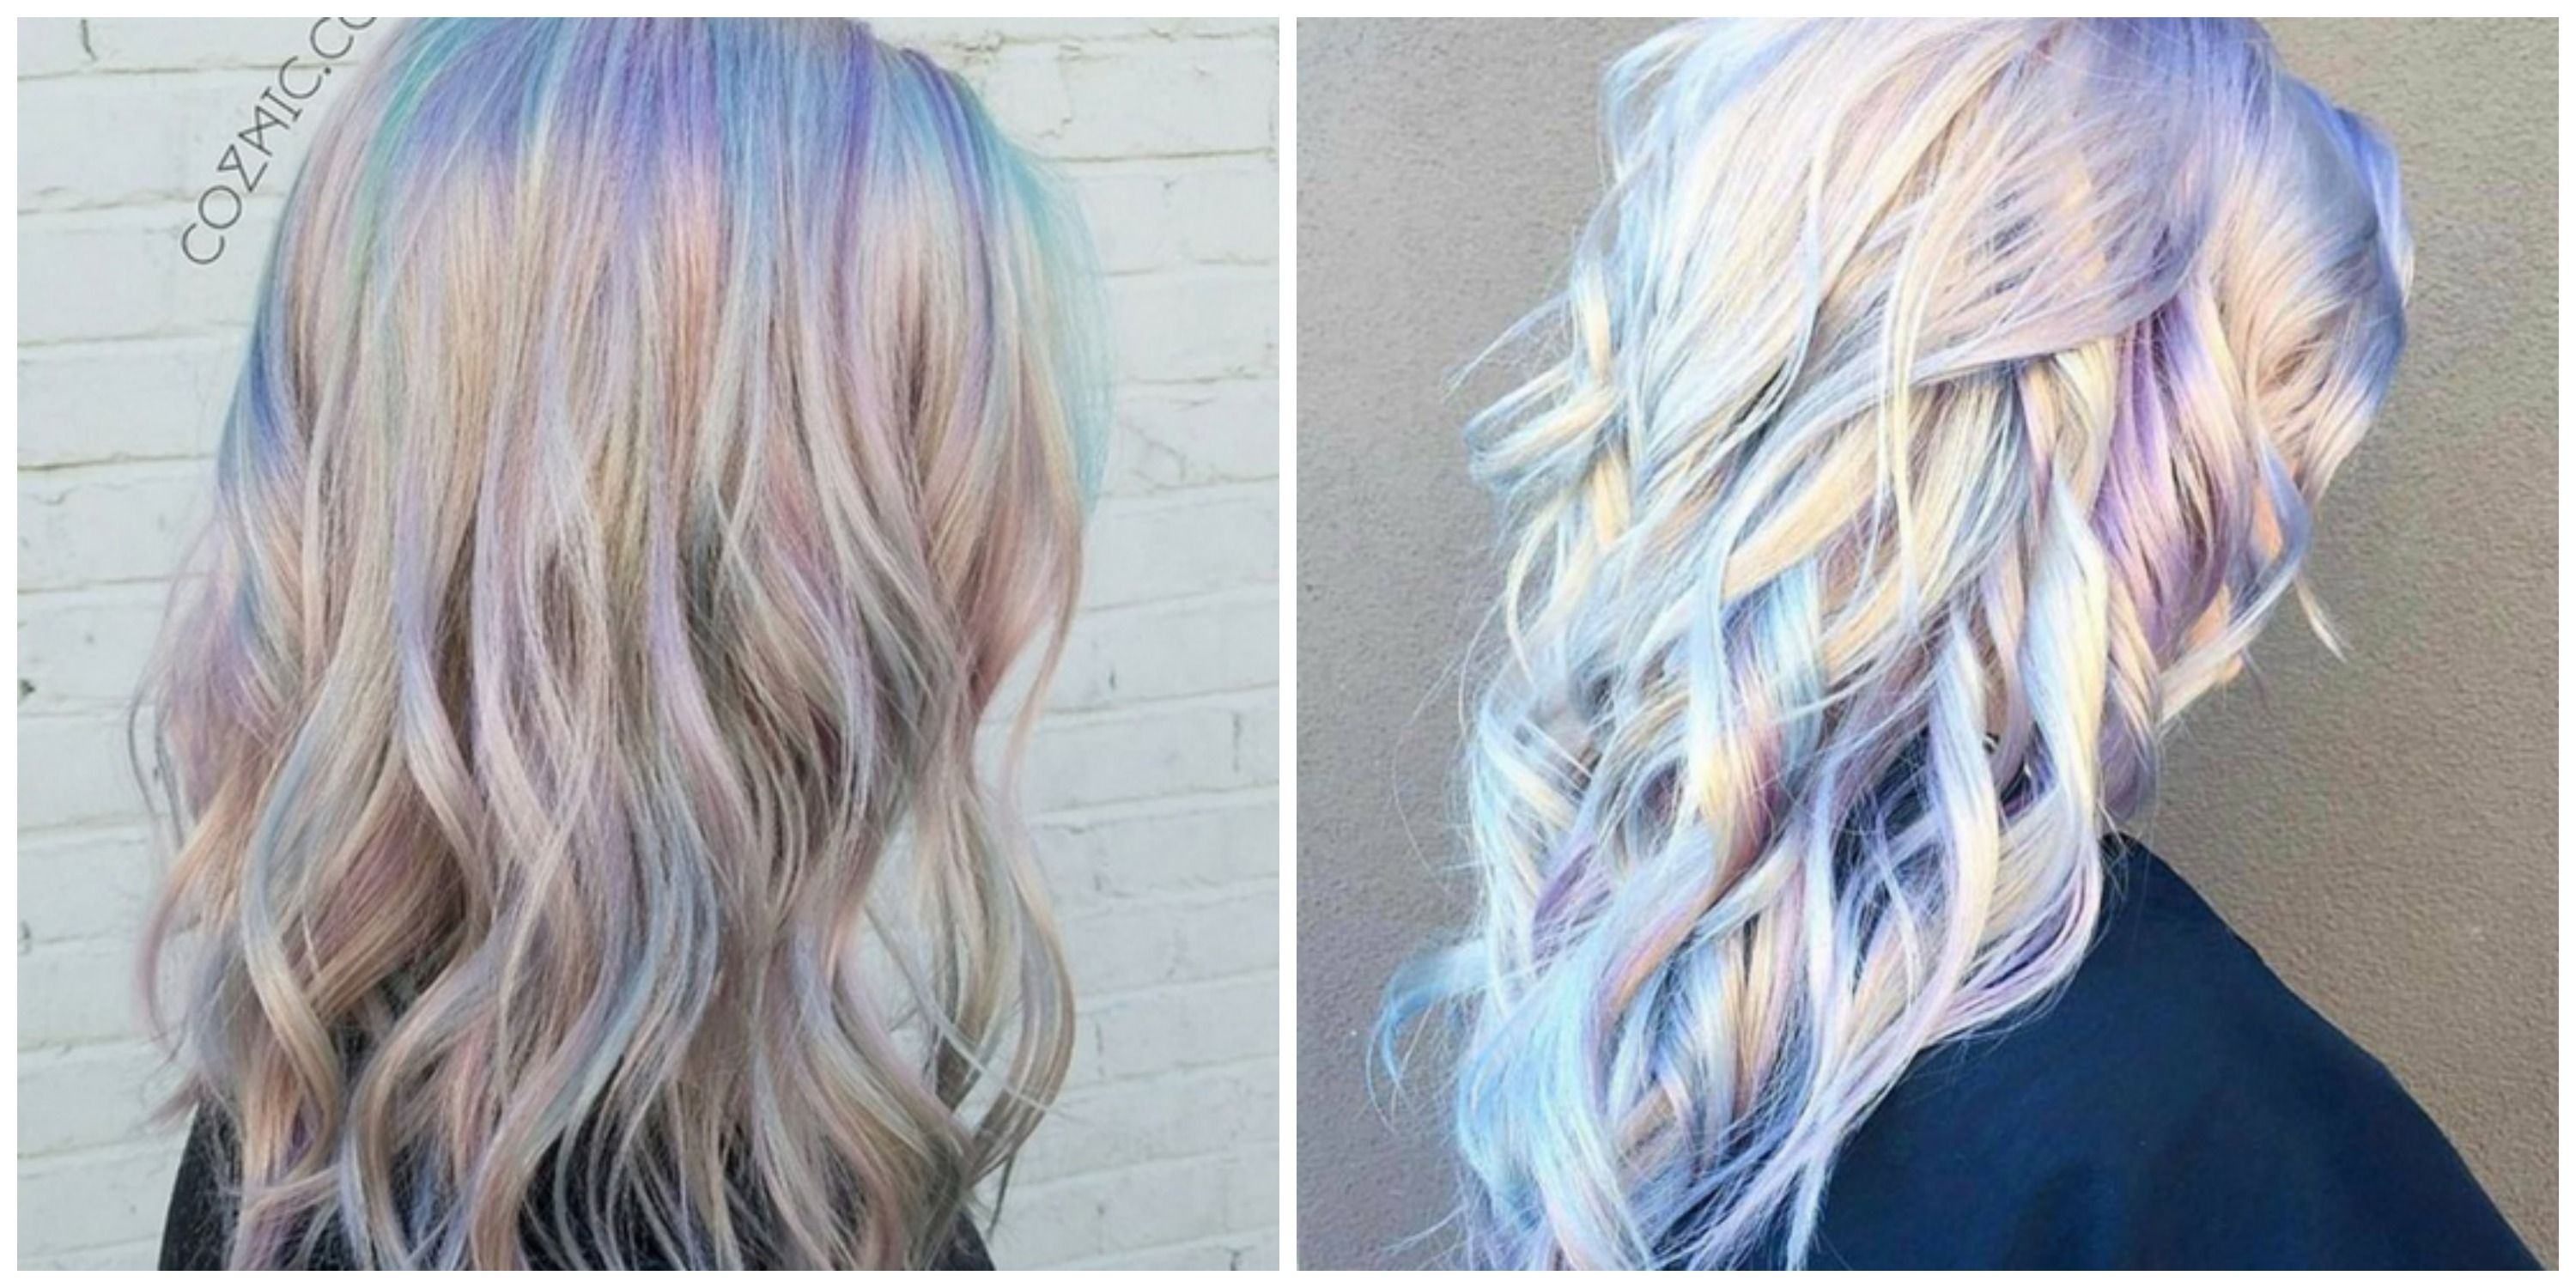 Holographic Hair Is The Latest 2017 Trend